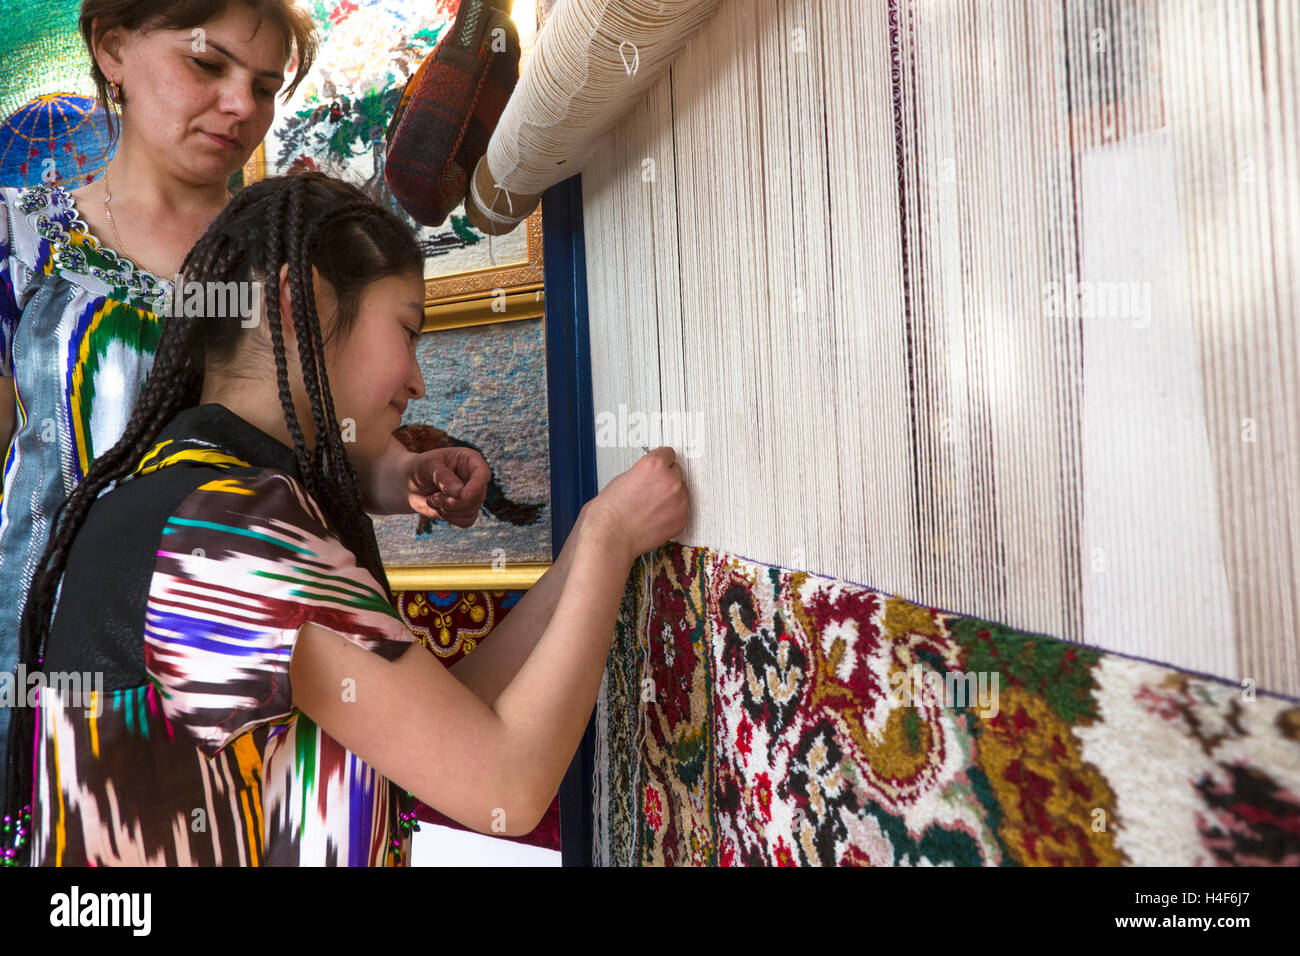 Women show for public traditional knotting a handmade carpet in central park during Nowruz holiday in Khujand city, - Stock Image